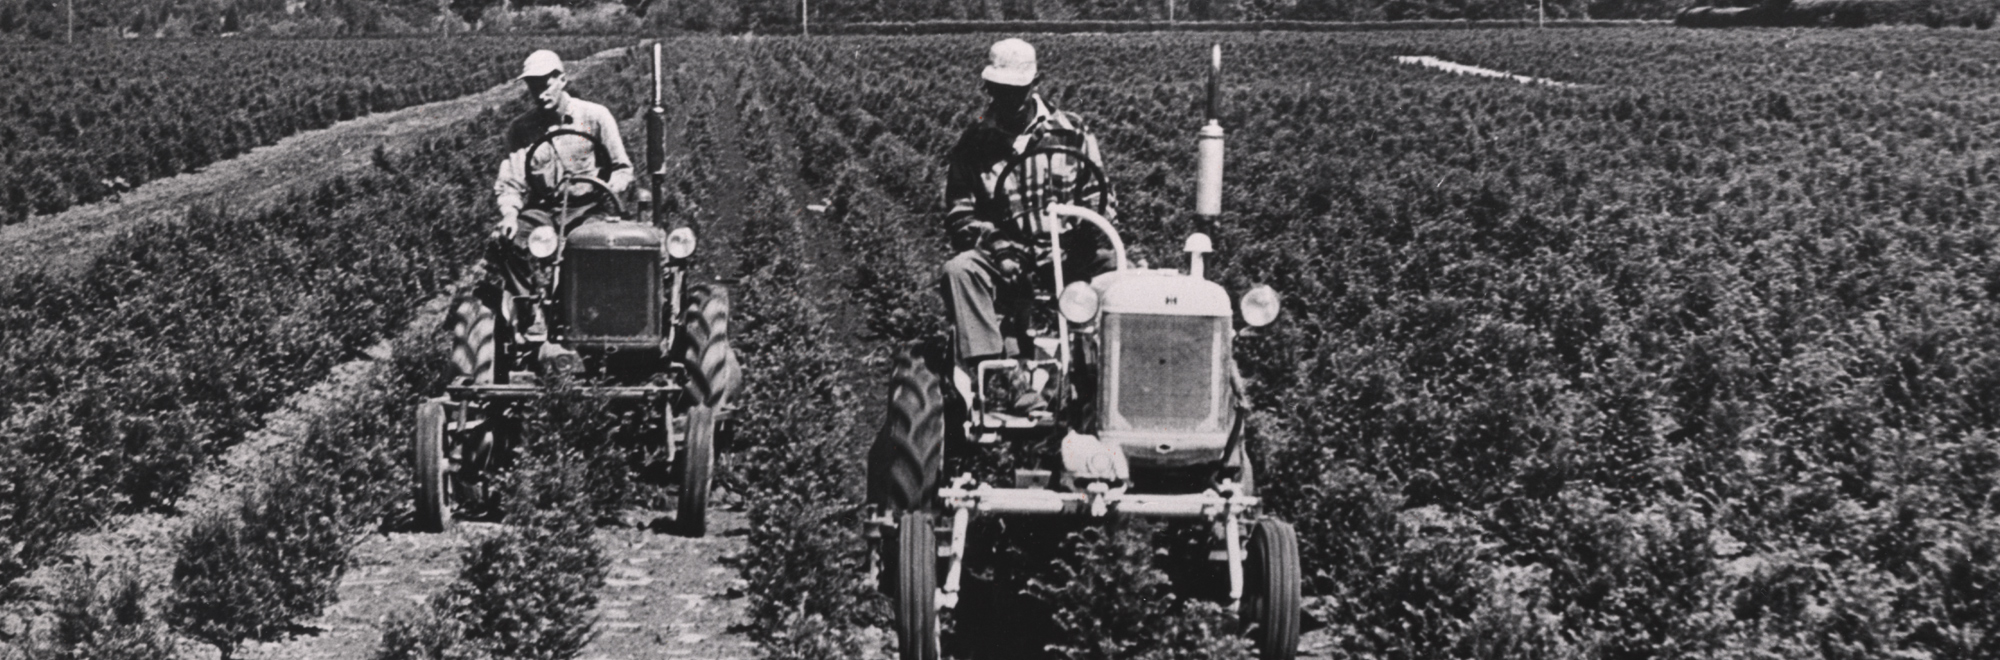 men on tractors in an agricultural field